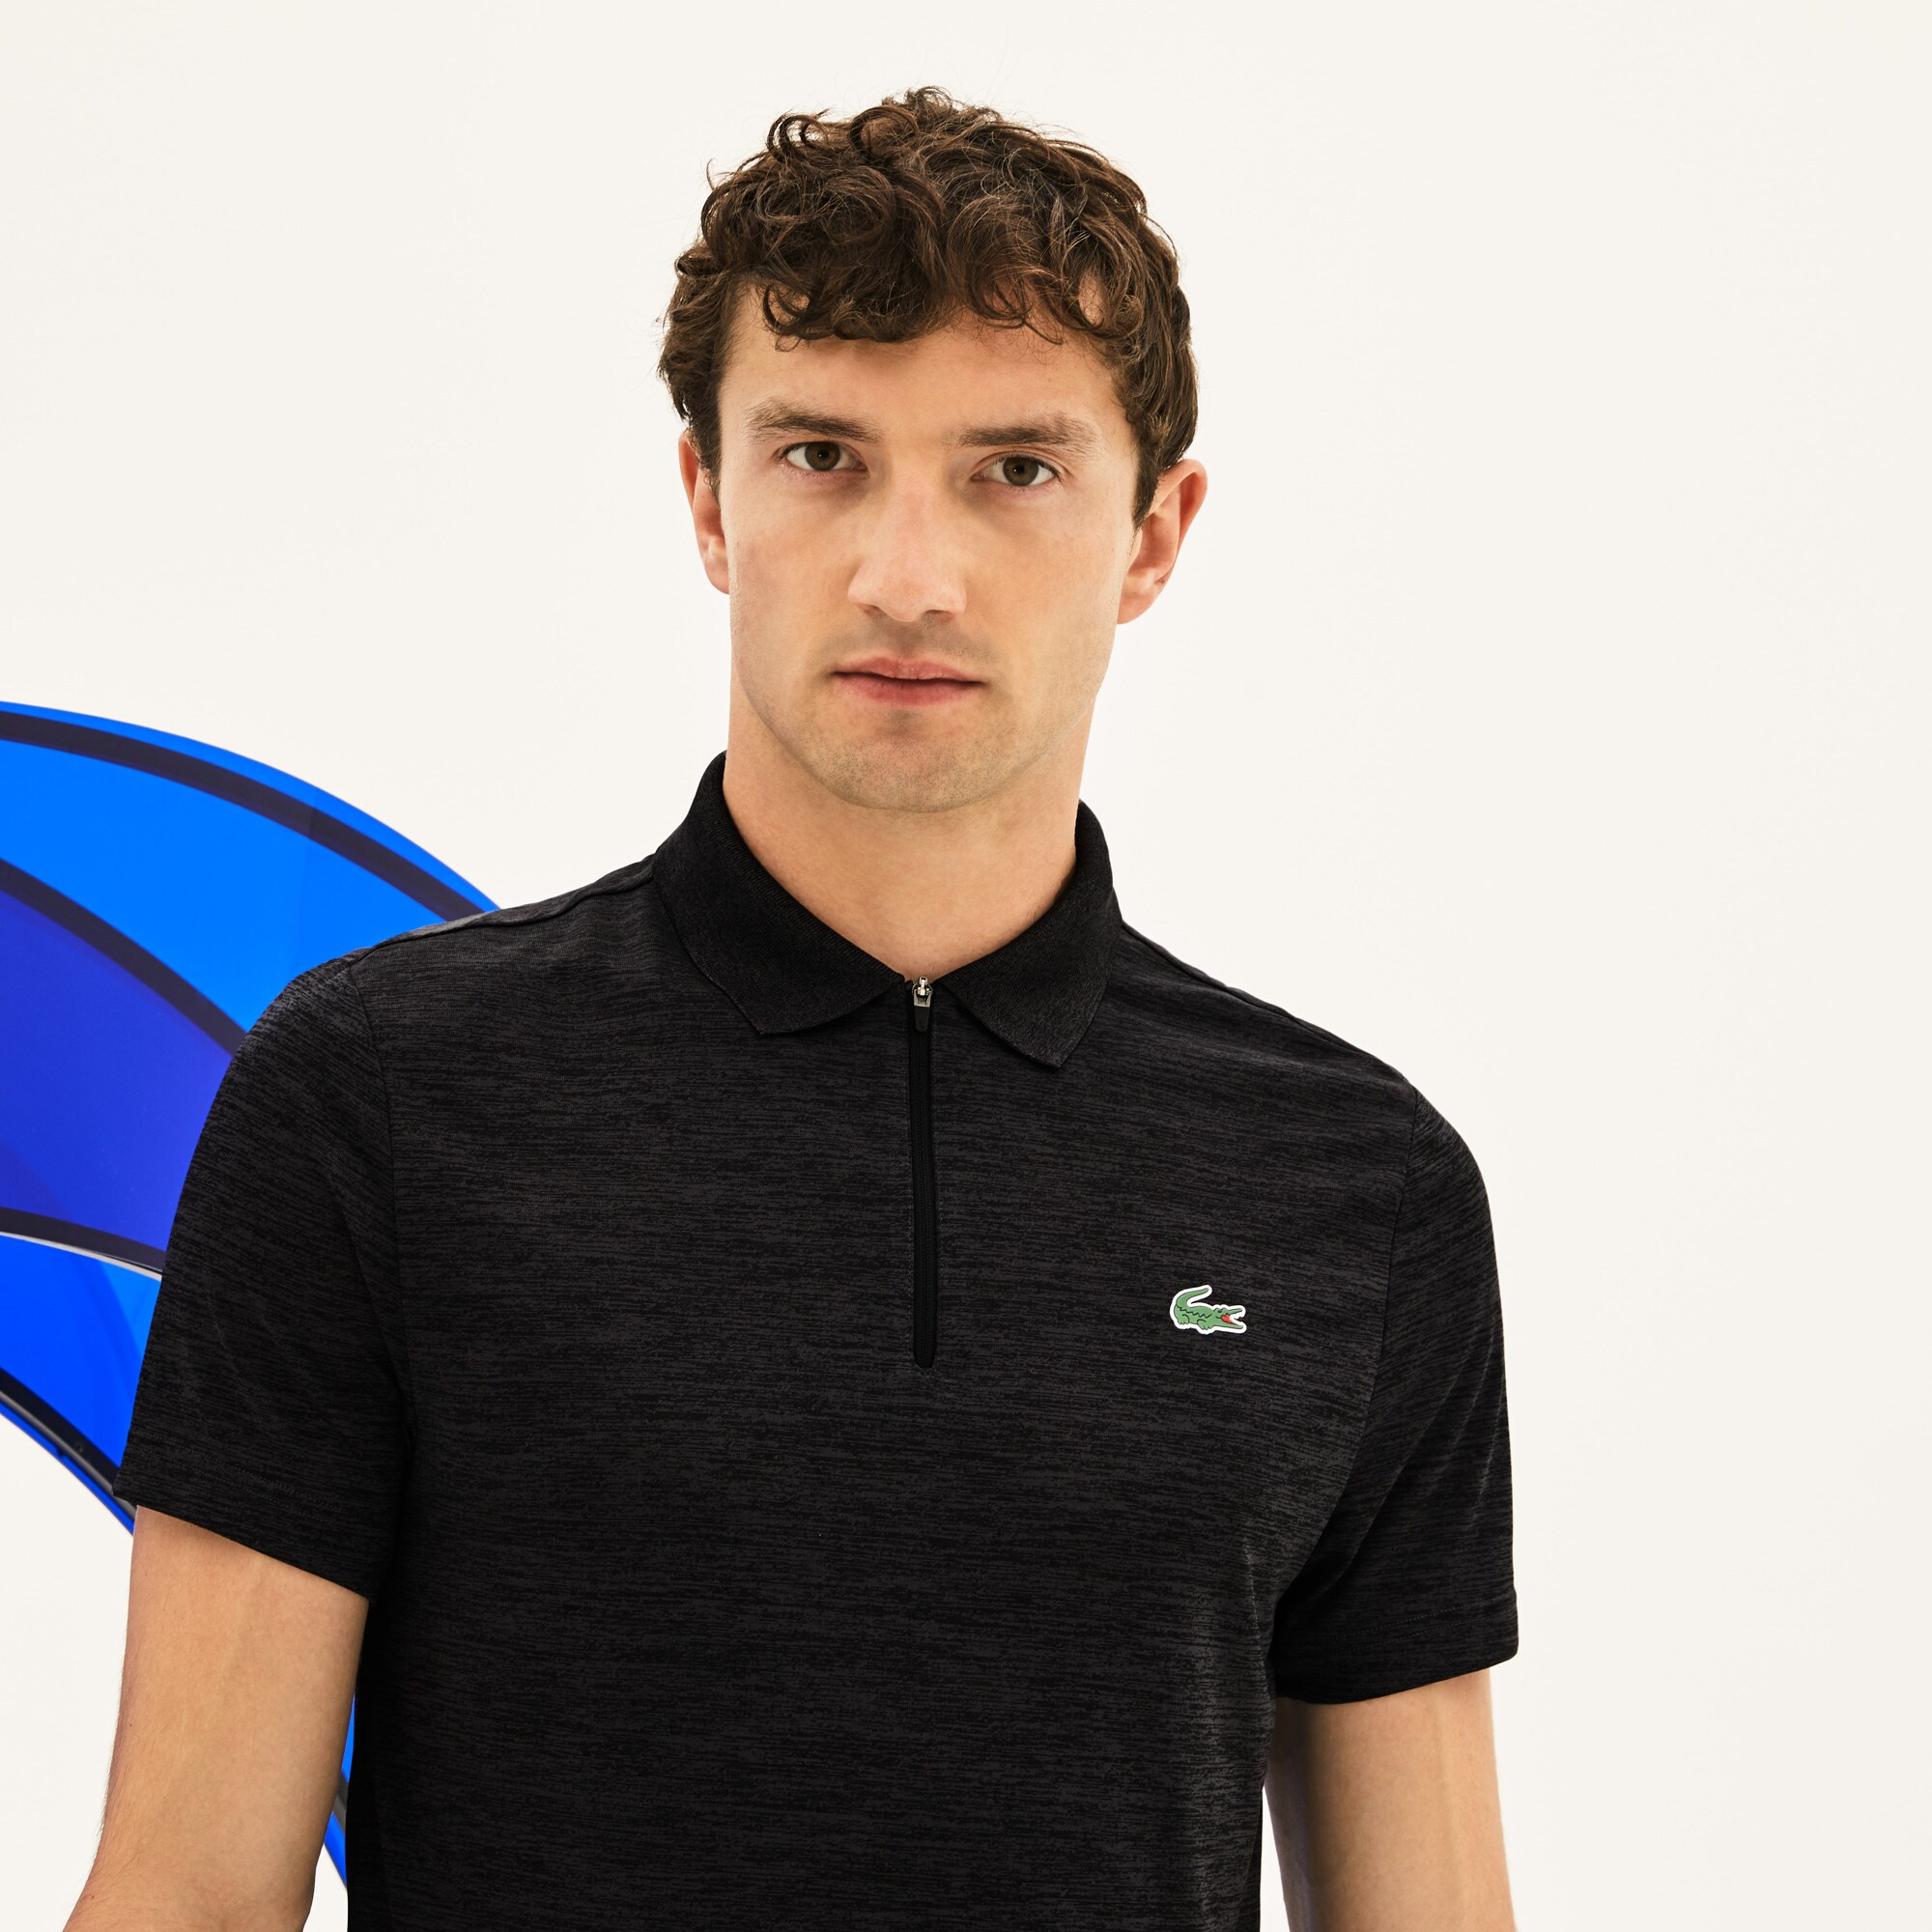 Polo Lacoste SPORT Collezione Novak Djokovic - Off Court in jersey tecnico chiné